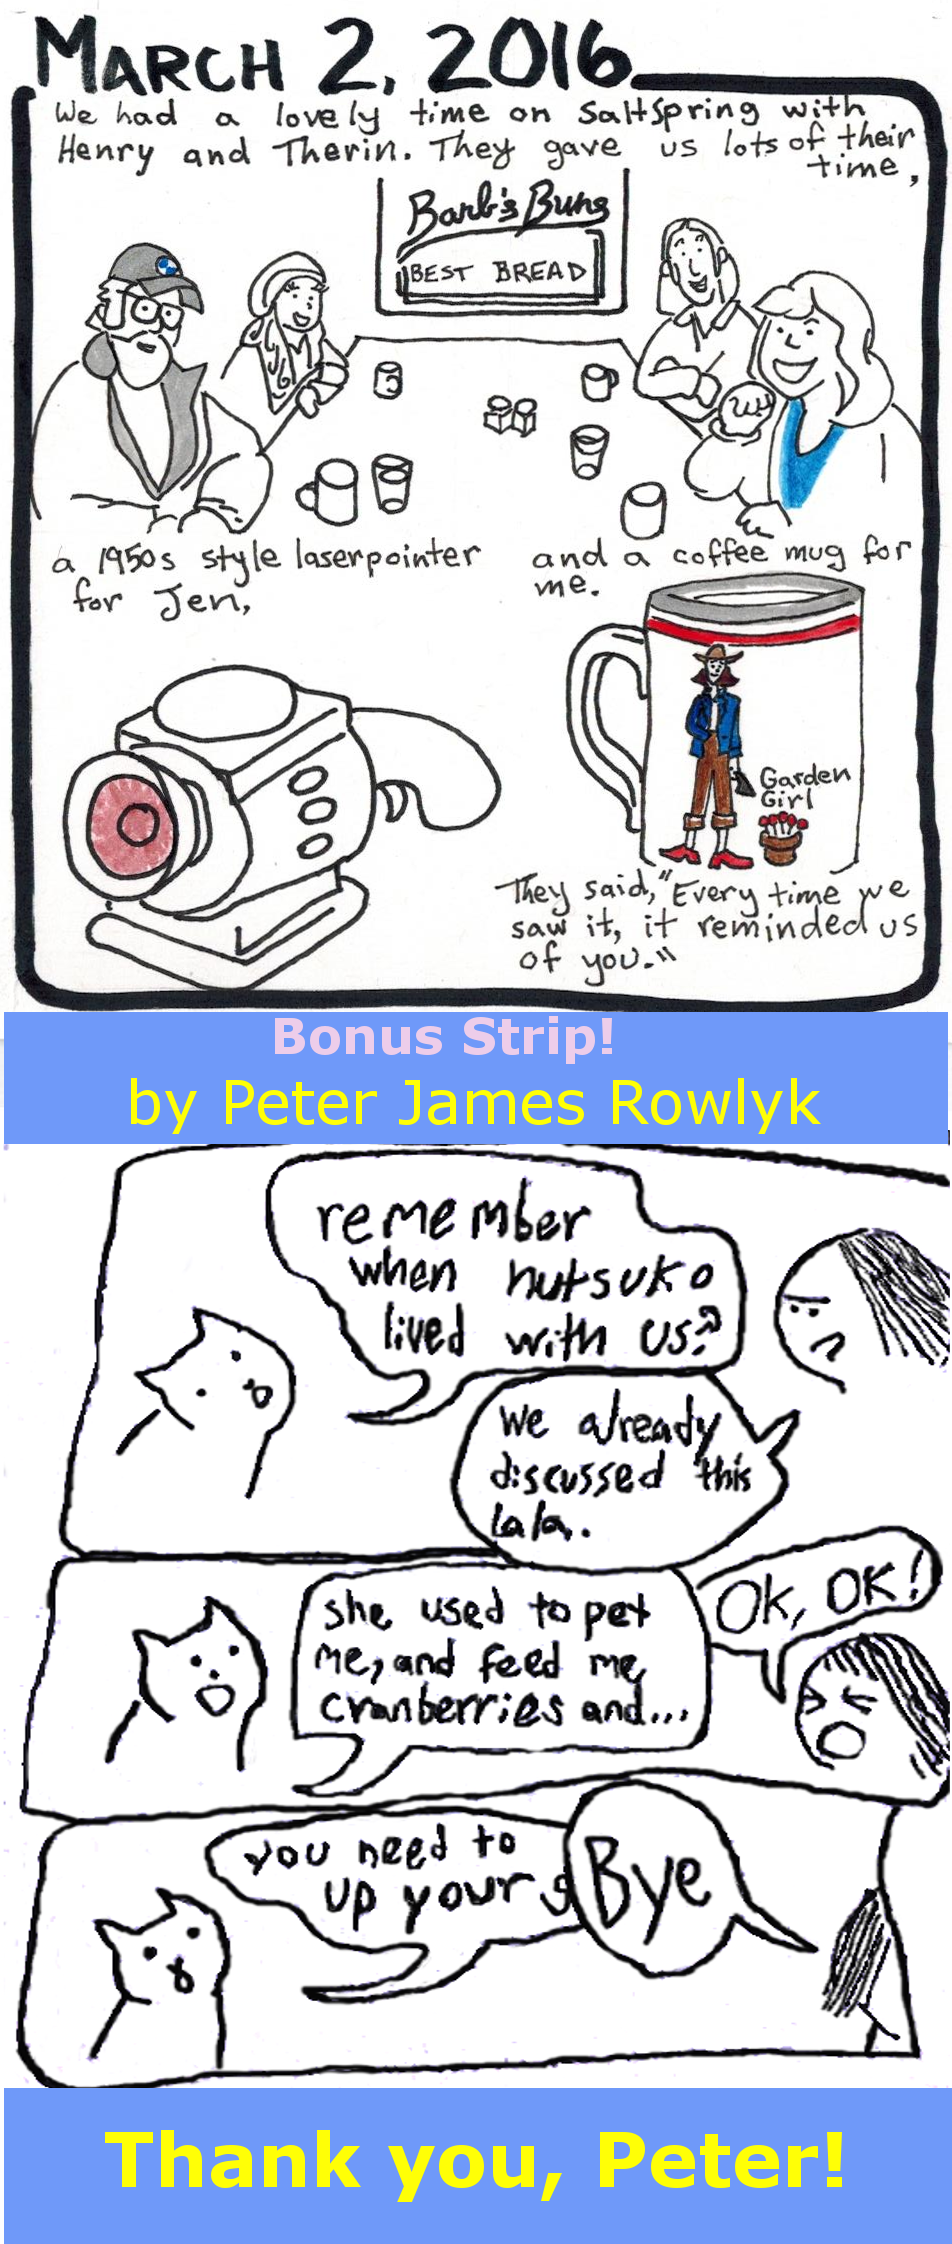 Henry and Therin + Bonus Strip from Peter